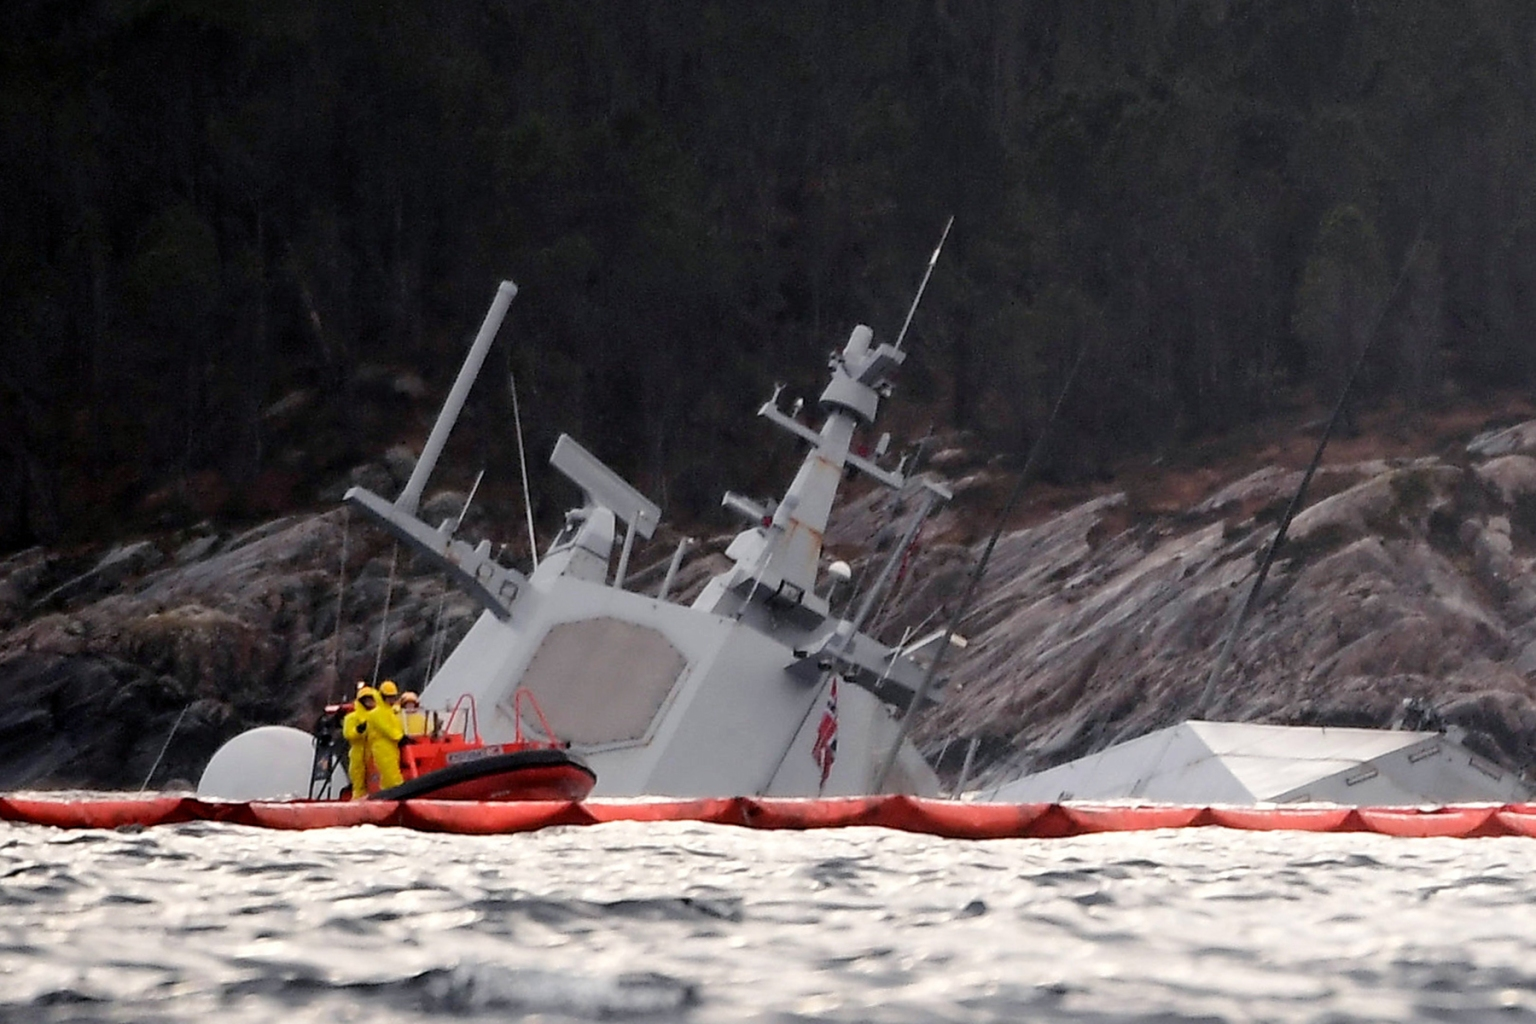 The Norwegian frigate KNM Helge Ingstad is seen partly underwater in the sea near Bergen, western Norway, on Nov. 13. The frigate capsized after collision with a tank ship on Nov. 8. MARIT HOMMEDAL/AFP/Getty Images